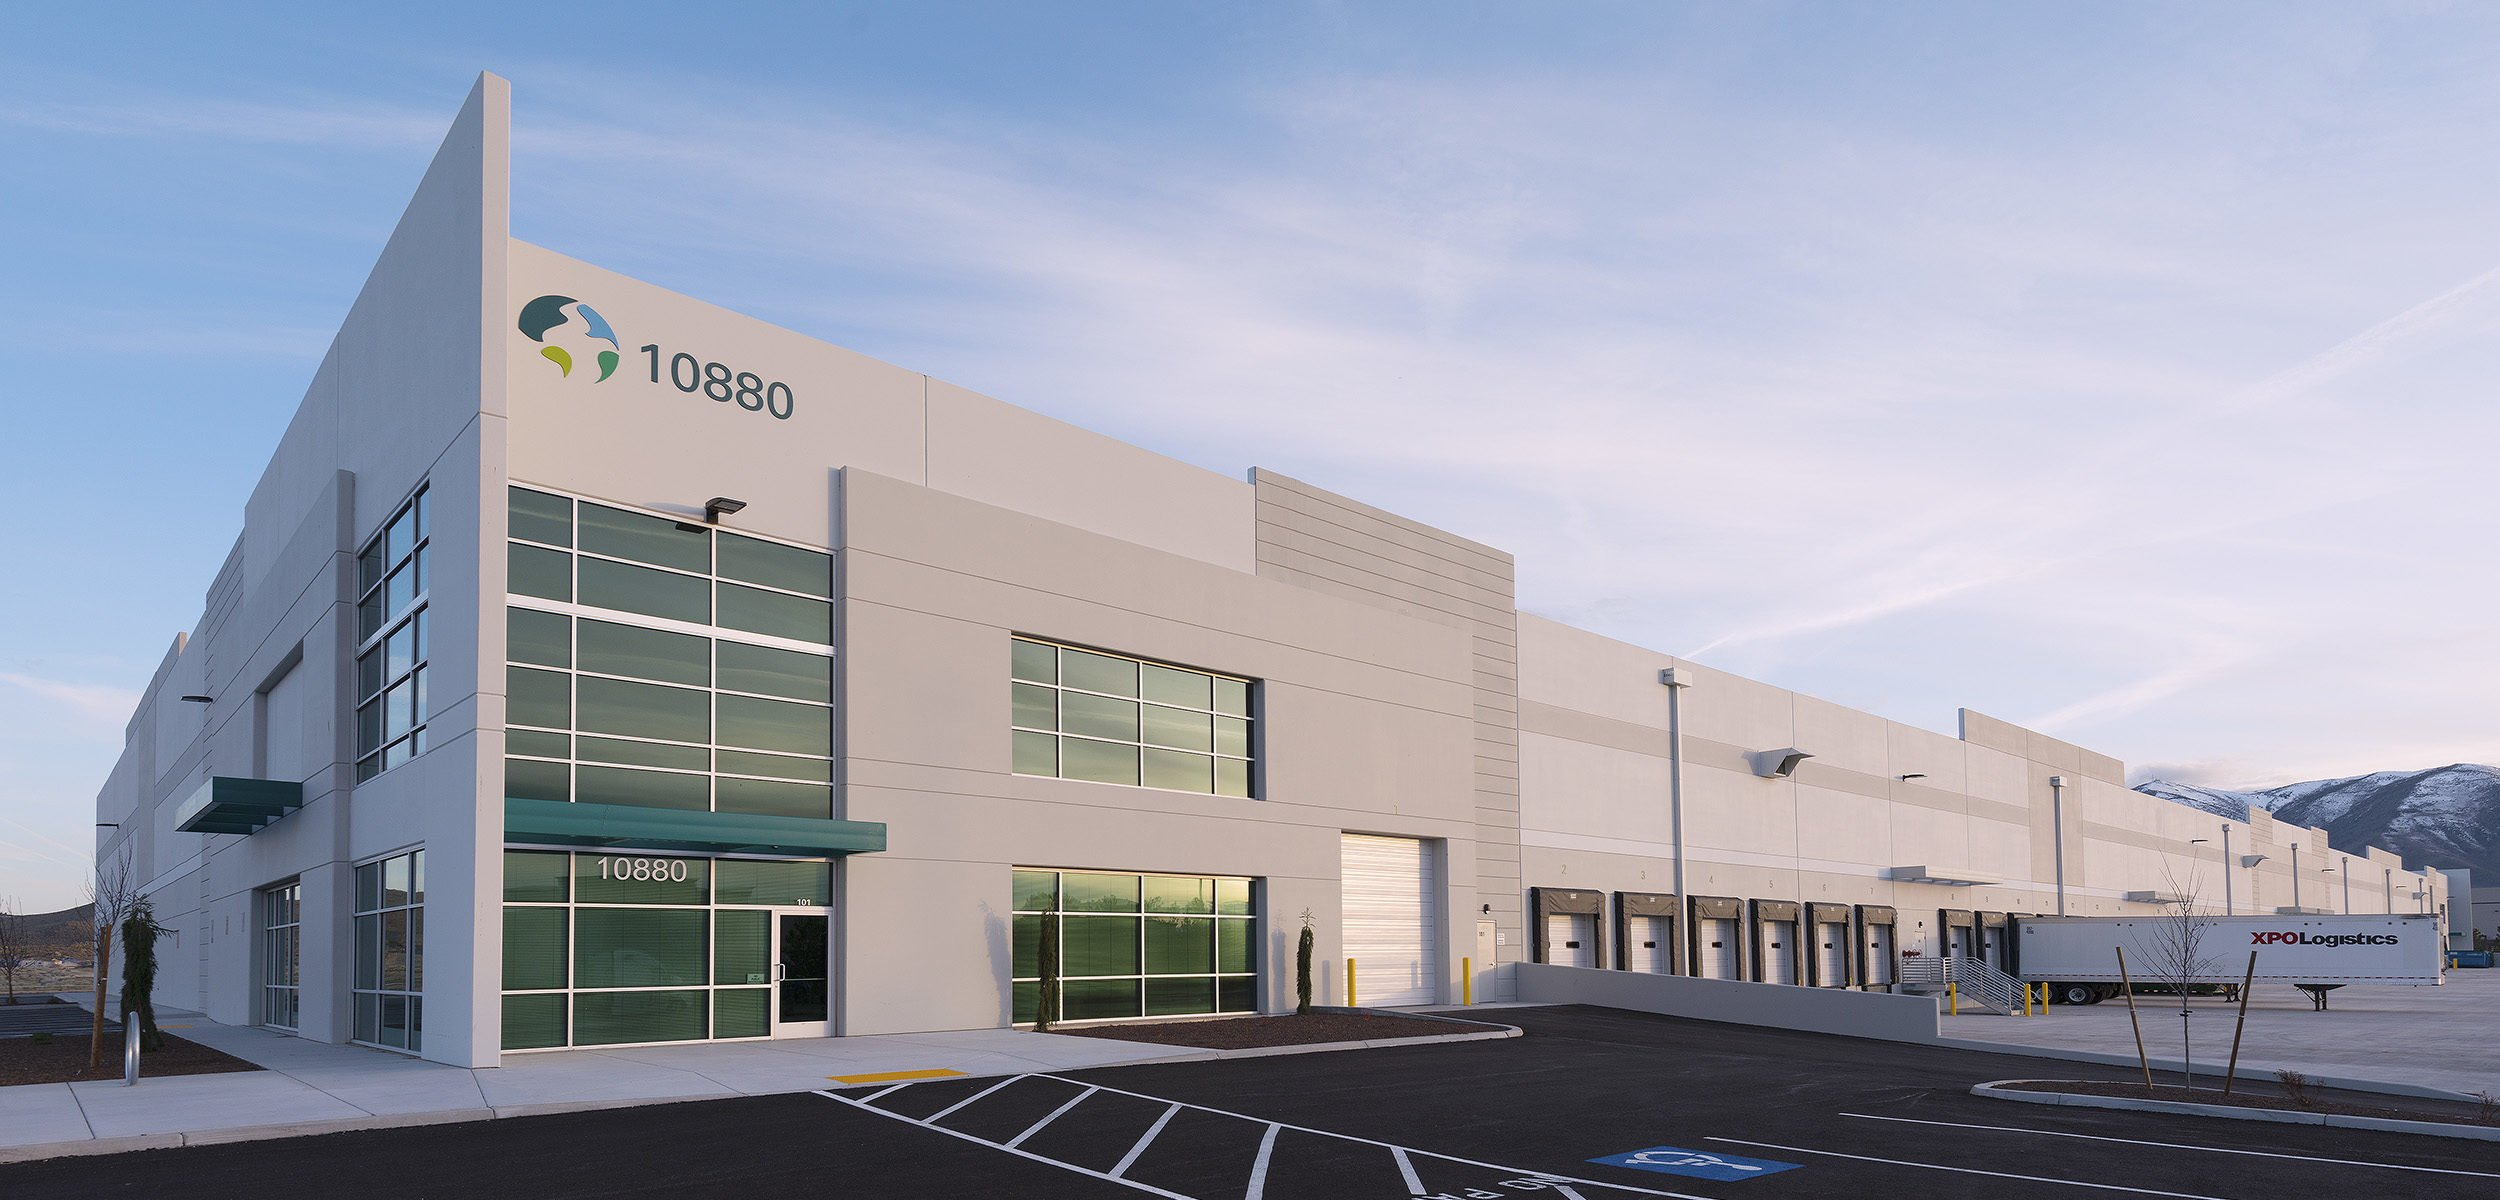 SP5 is a Class A speculative industrial building in Reno